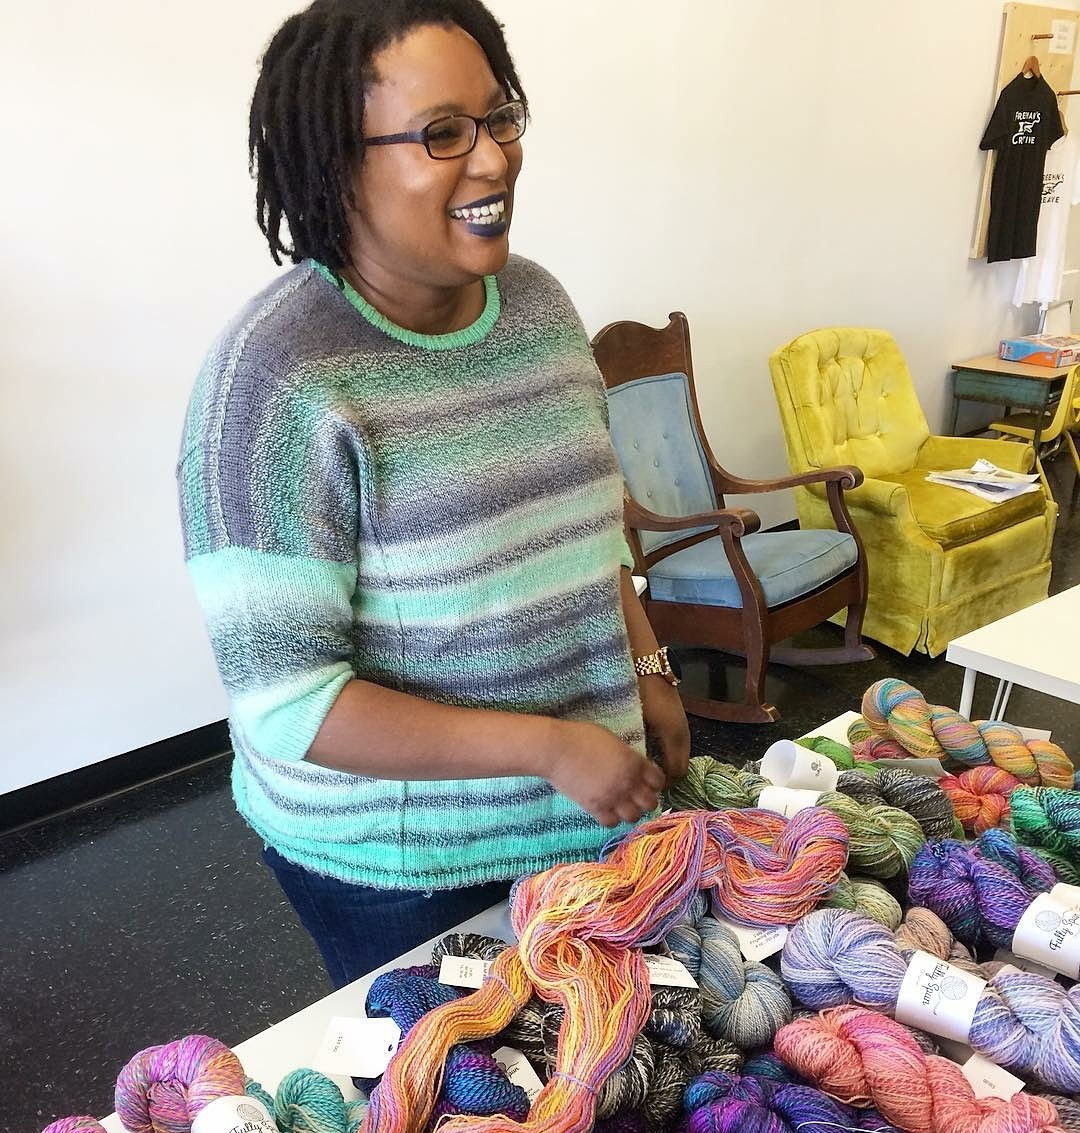 Interview with Brooke of Fully Spun